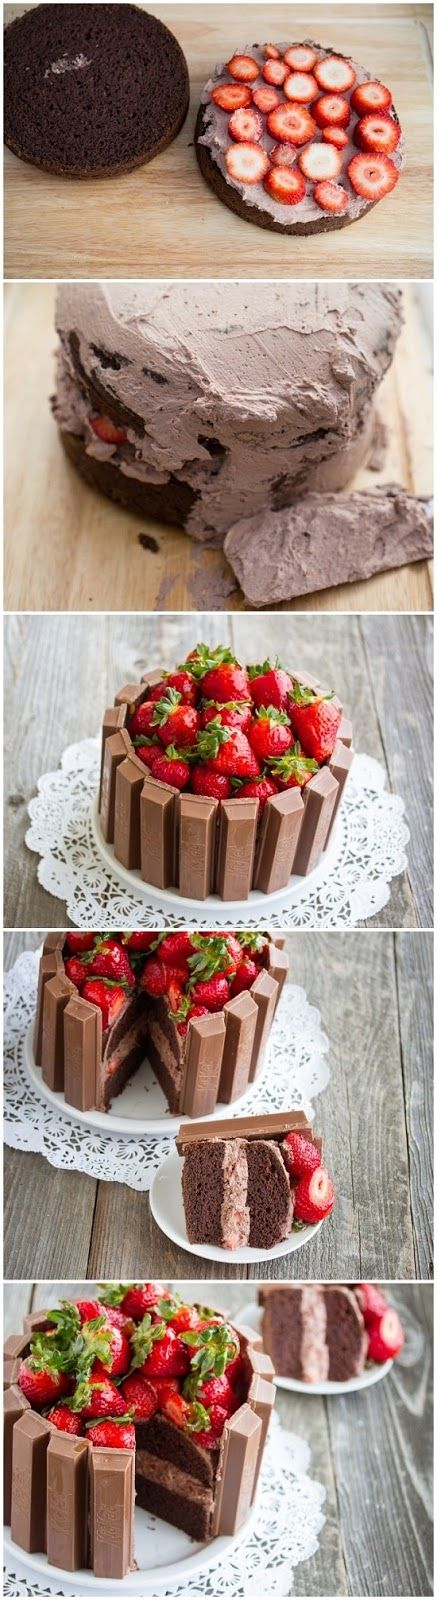 Strawberry Kit Kat CakeDesserts, Kit Kat Cakes, Kitkat Cake, Strawberries Kits, Kit Kat Cake, Strawberries Cake, Sweets Tooth, Birthday Cake, Food Drinks